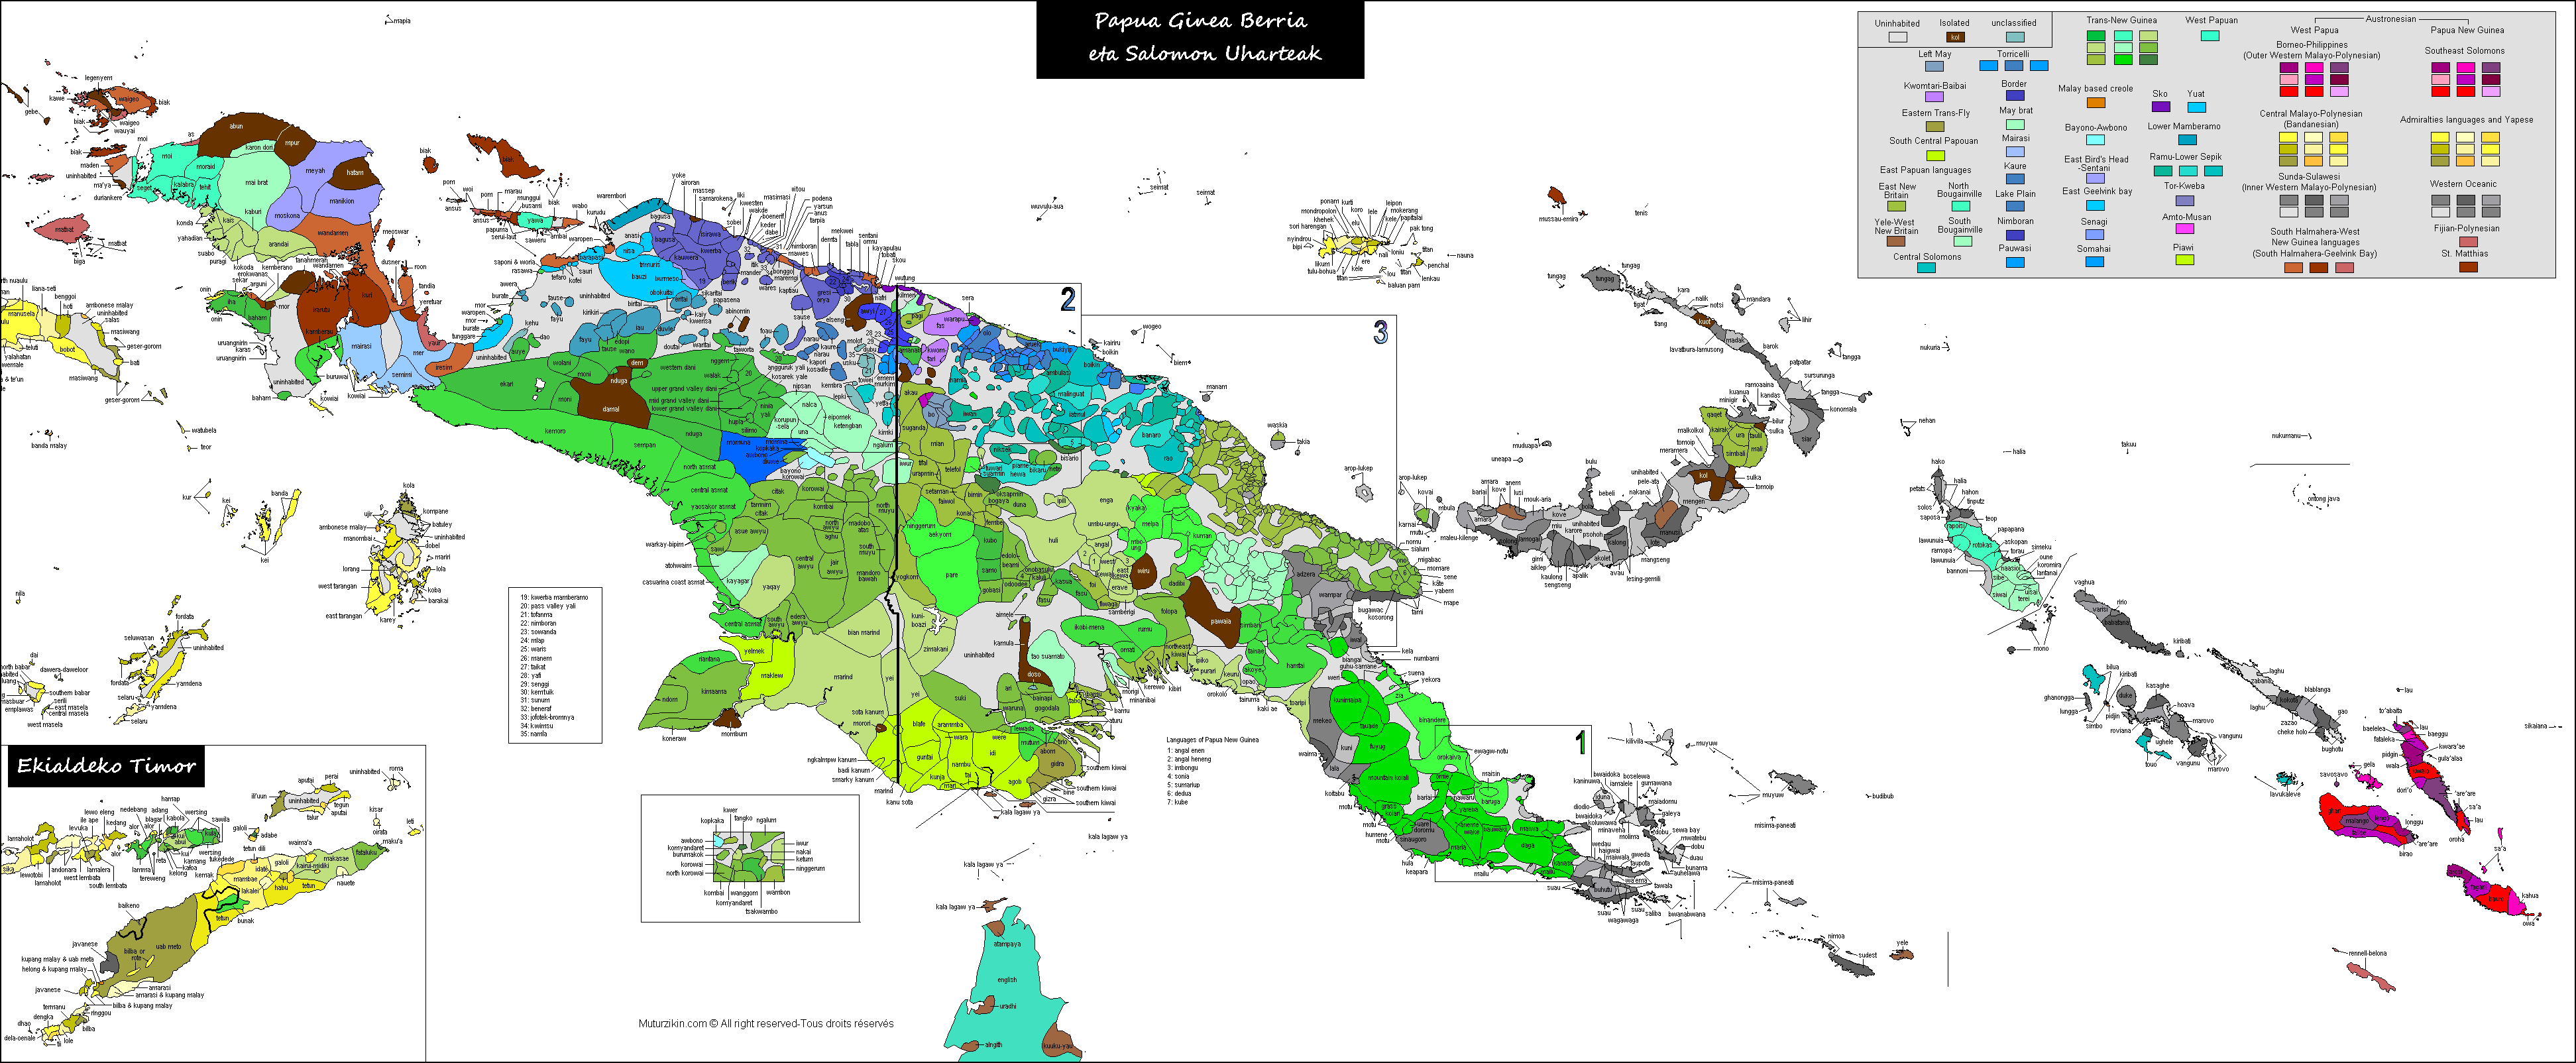 Png new guinea. Linguistic map of the